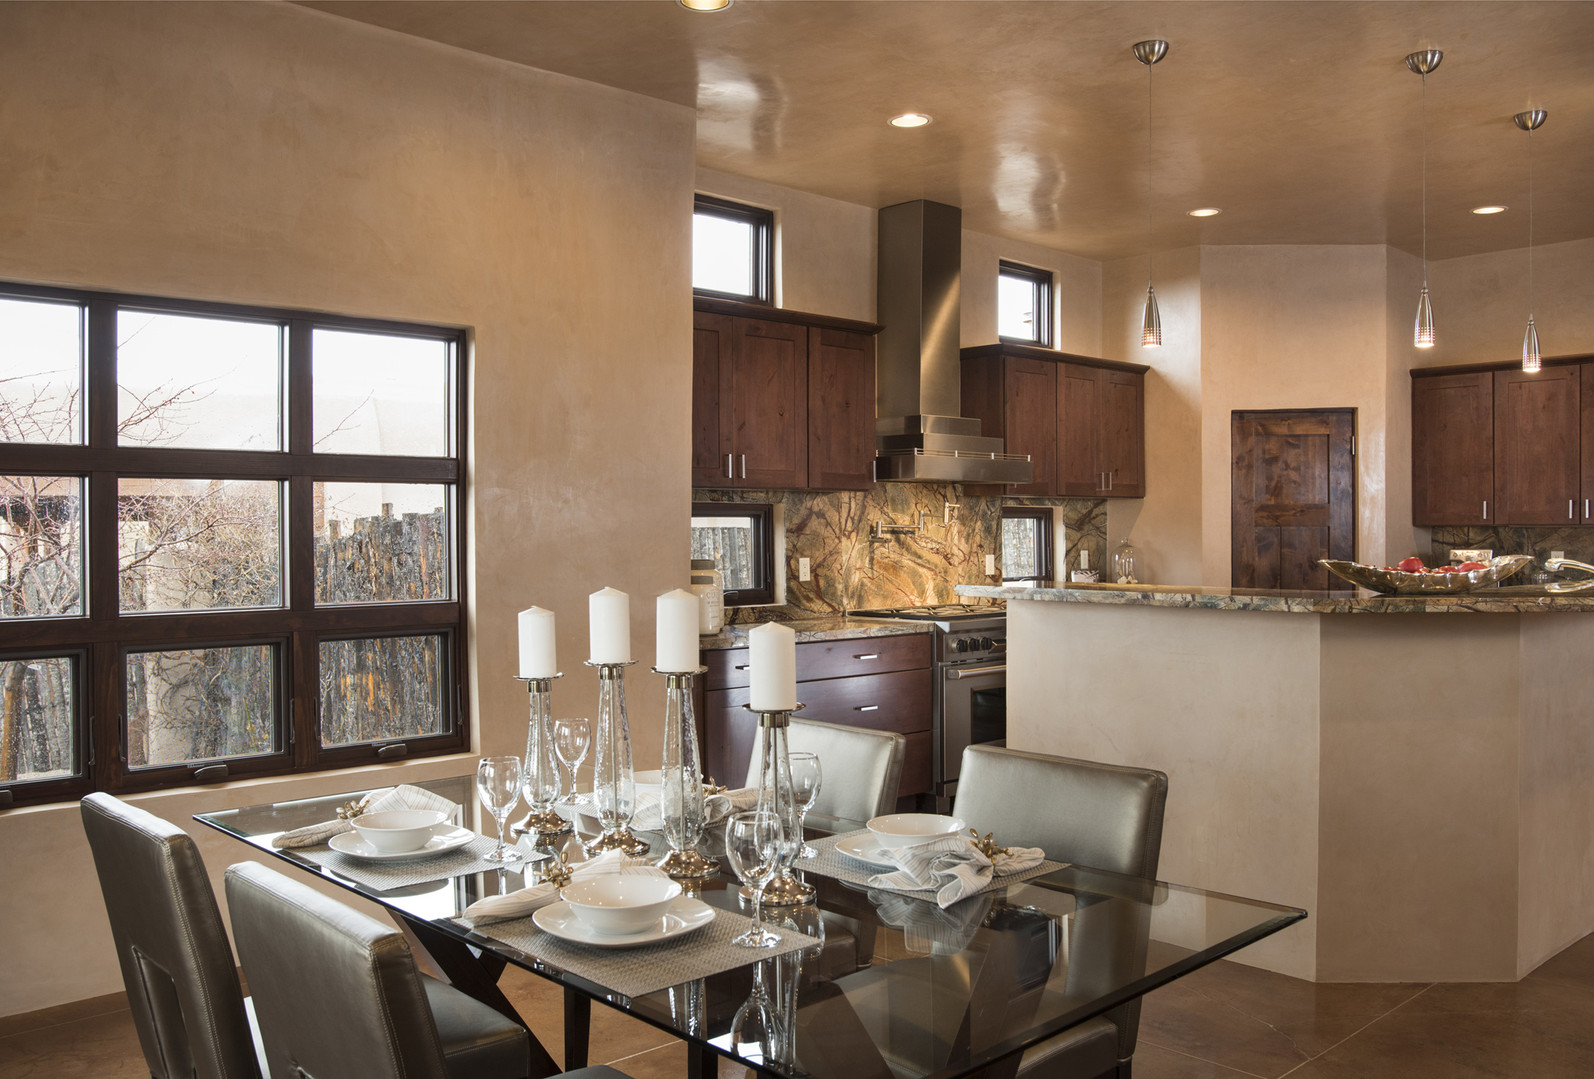 Camino Esperanza | Dining Room to Kitchen View